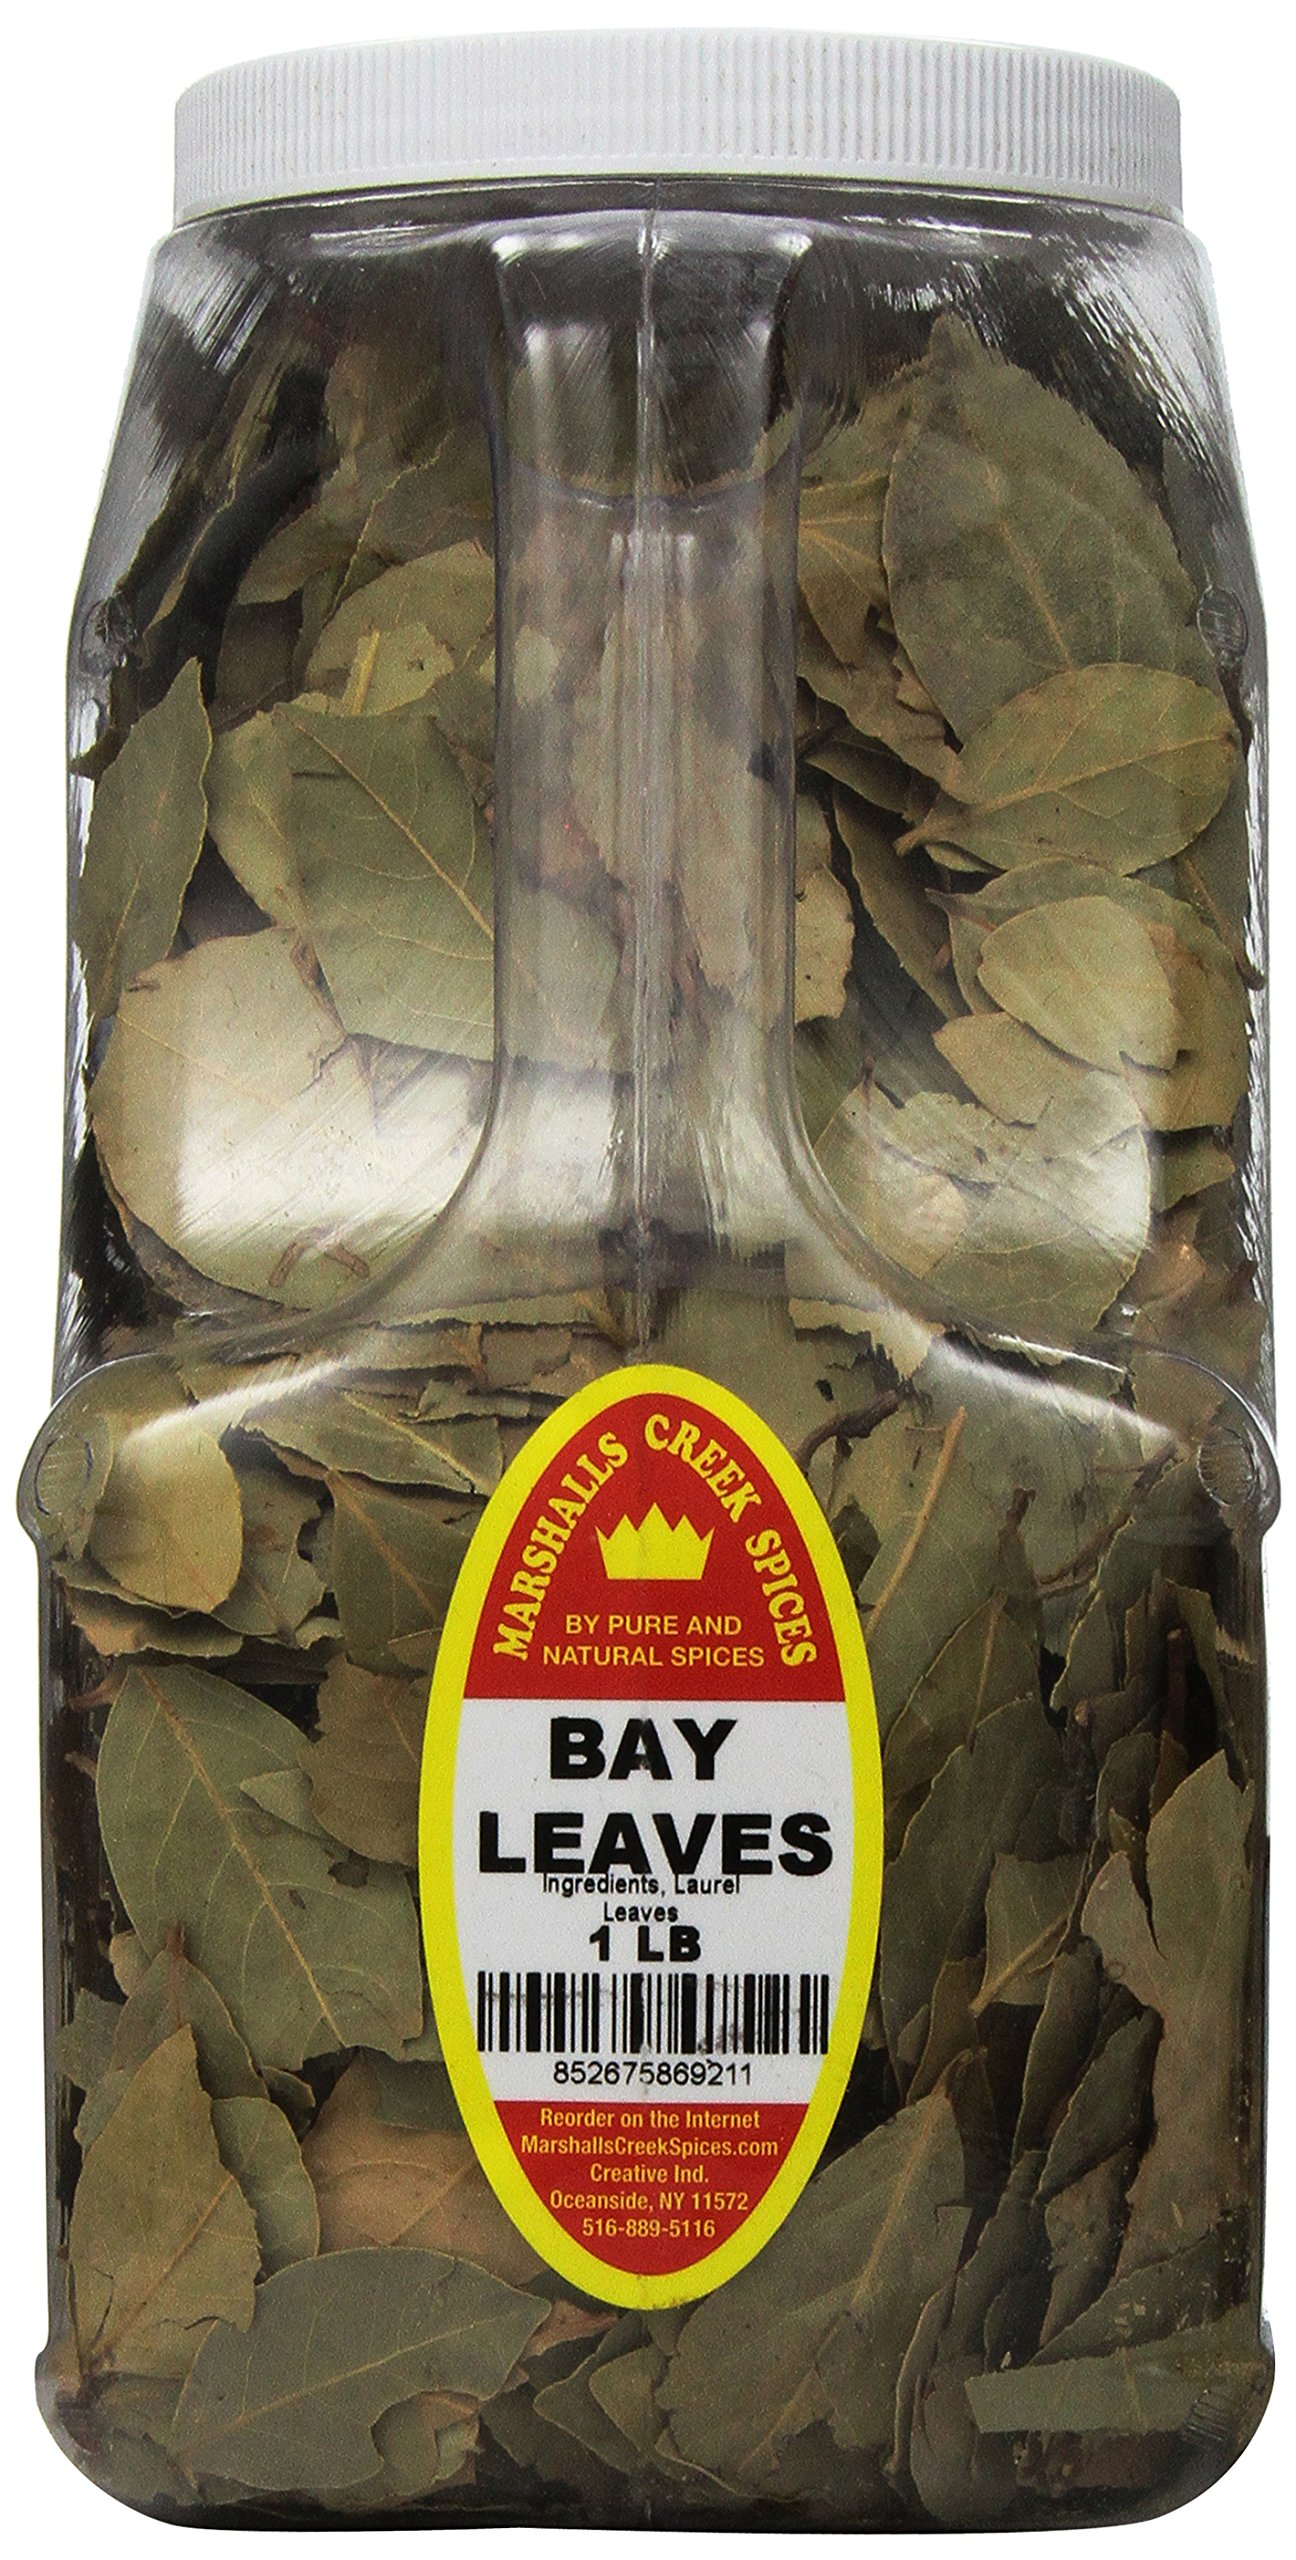 Marshalls Creek Spices Bay Leaves, XX-Large, 1 Pound